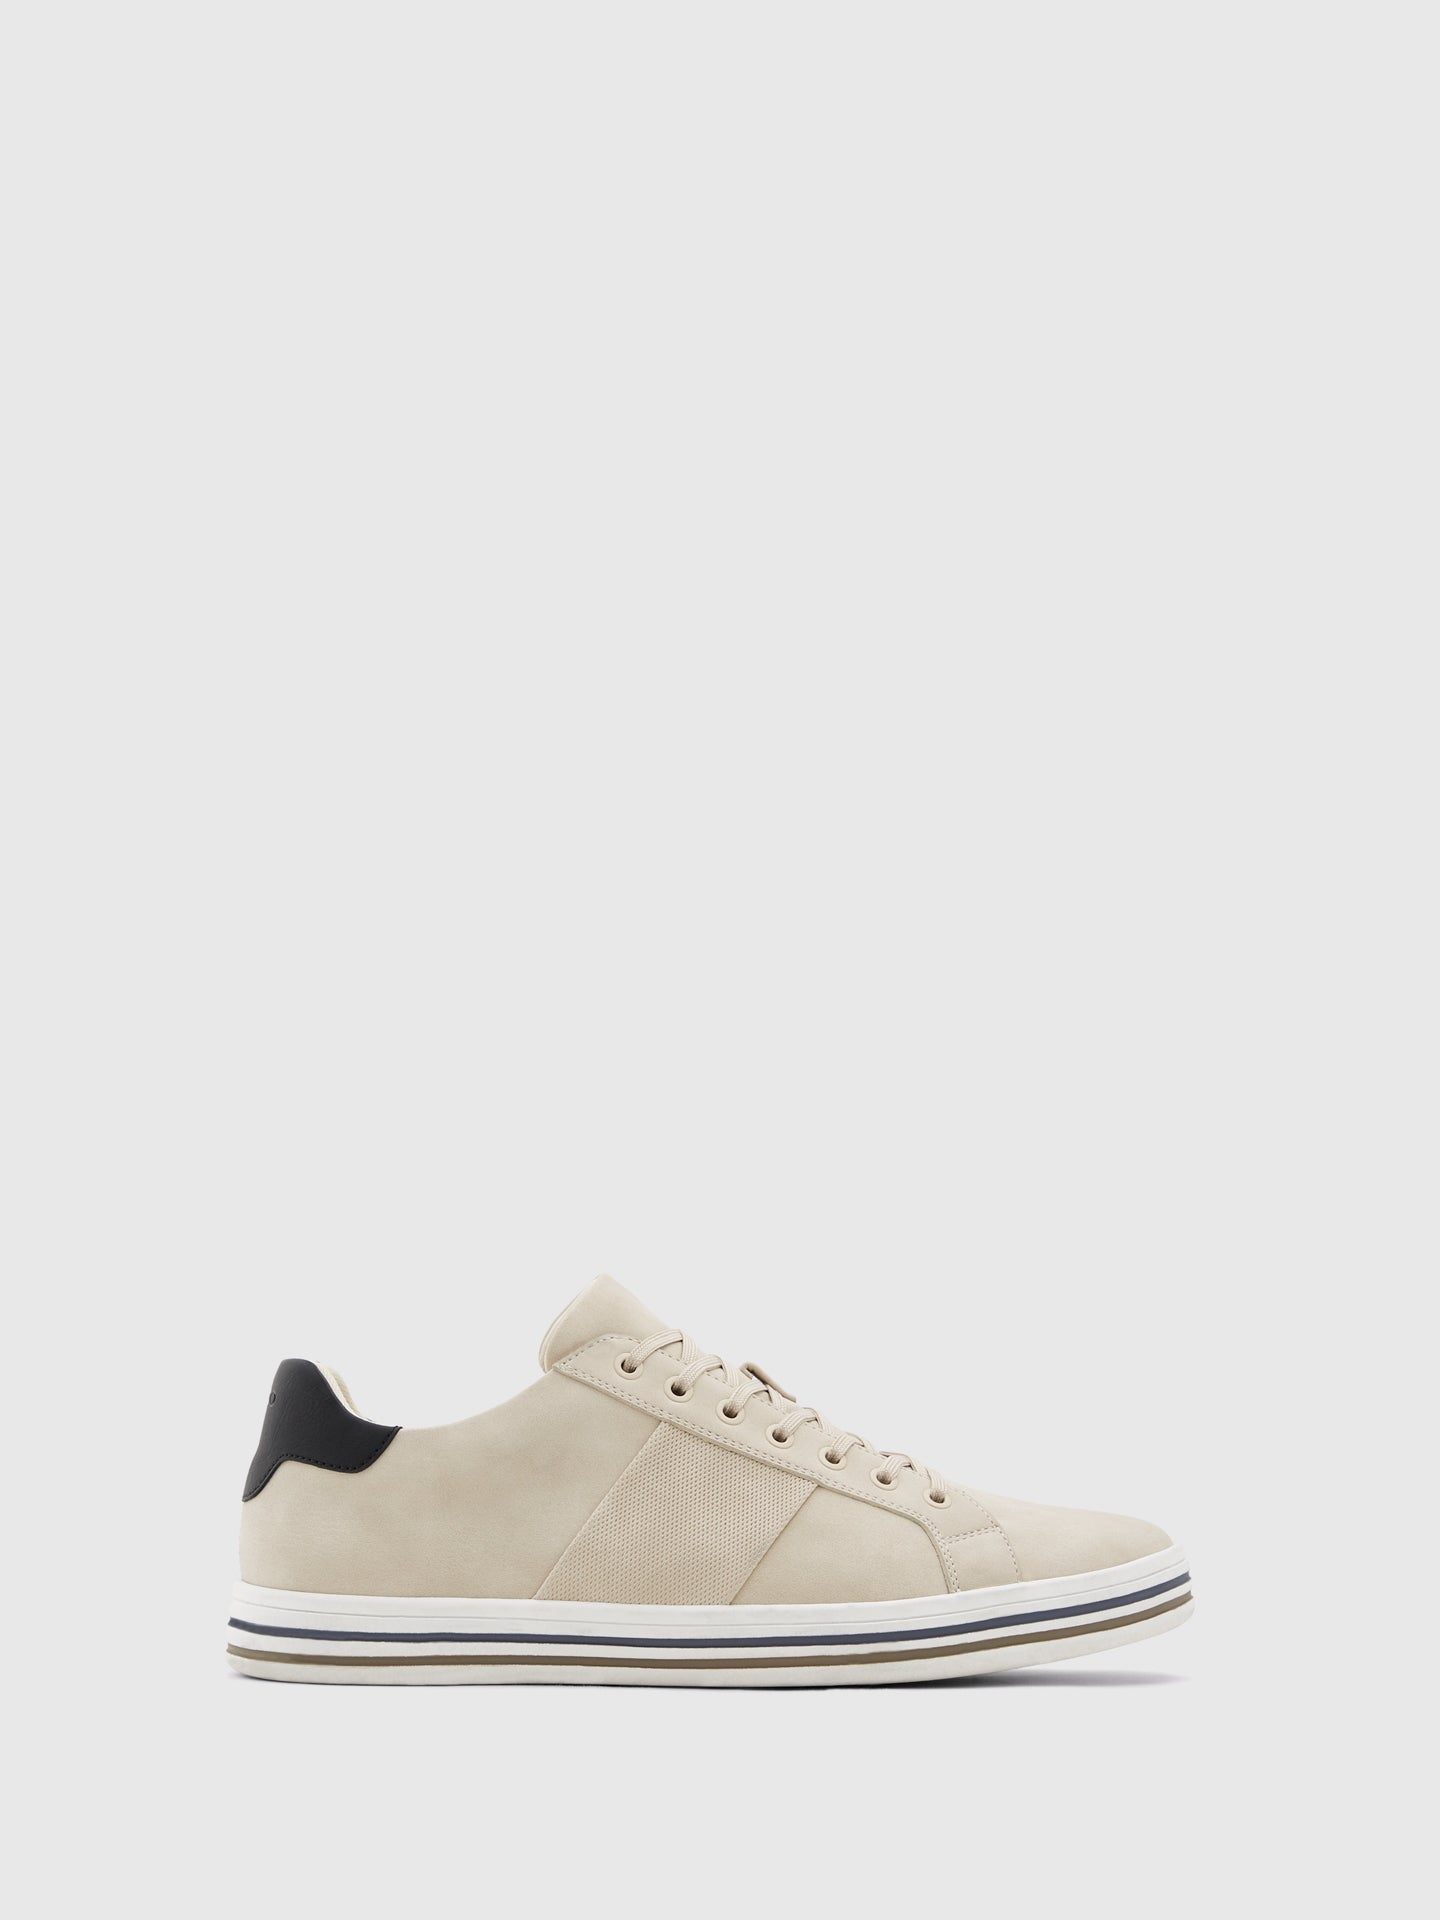 Aldo Beige Lace-up Trainers